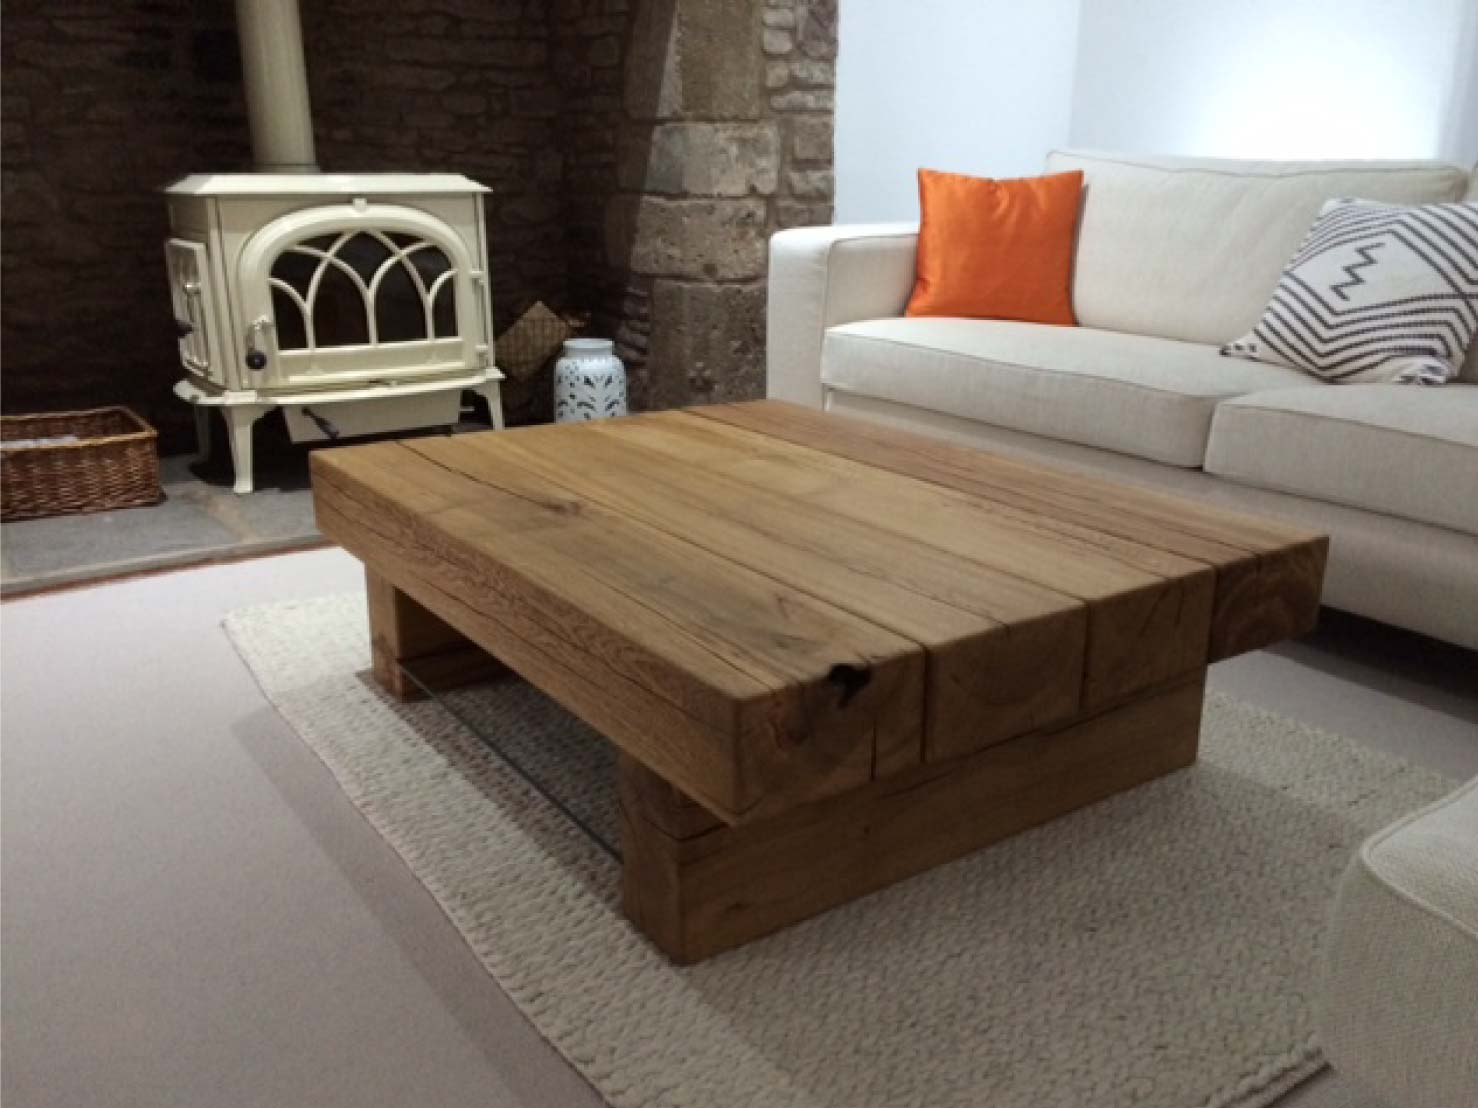 rustic-oak-beam-coffee-table-from-abacus-tables-classic-style-1.1m-project-239